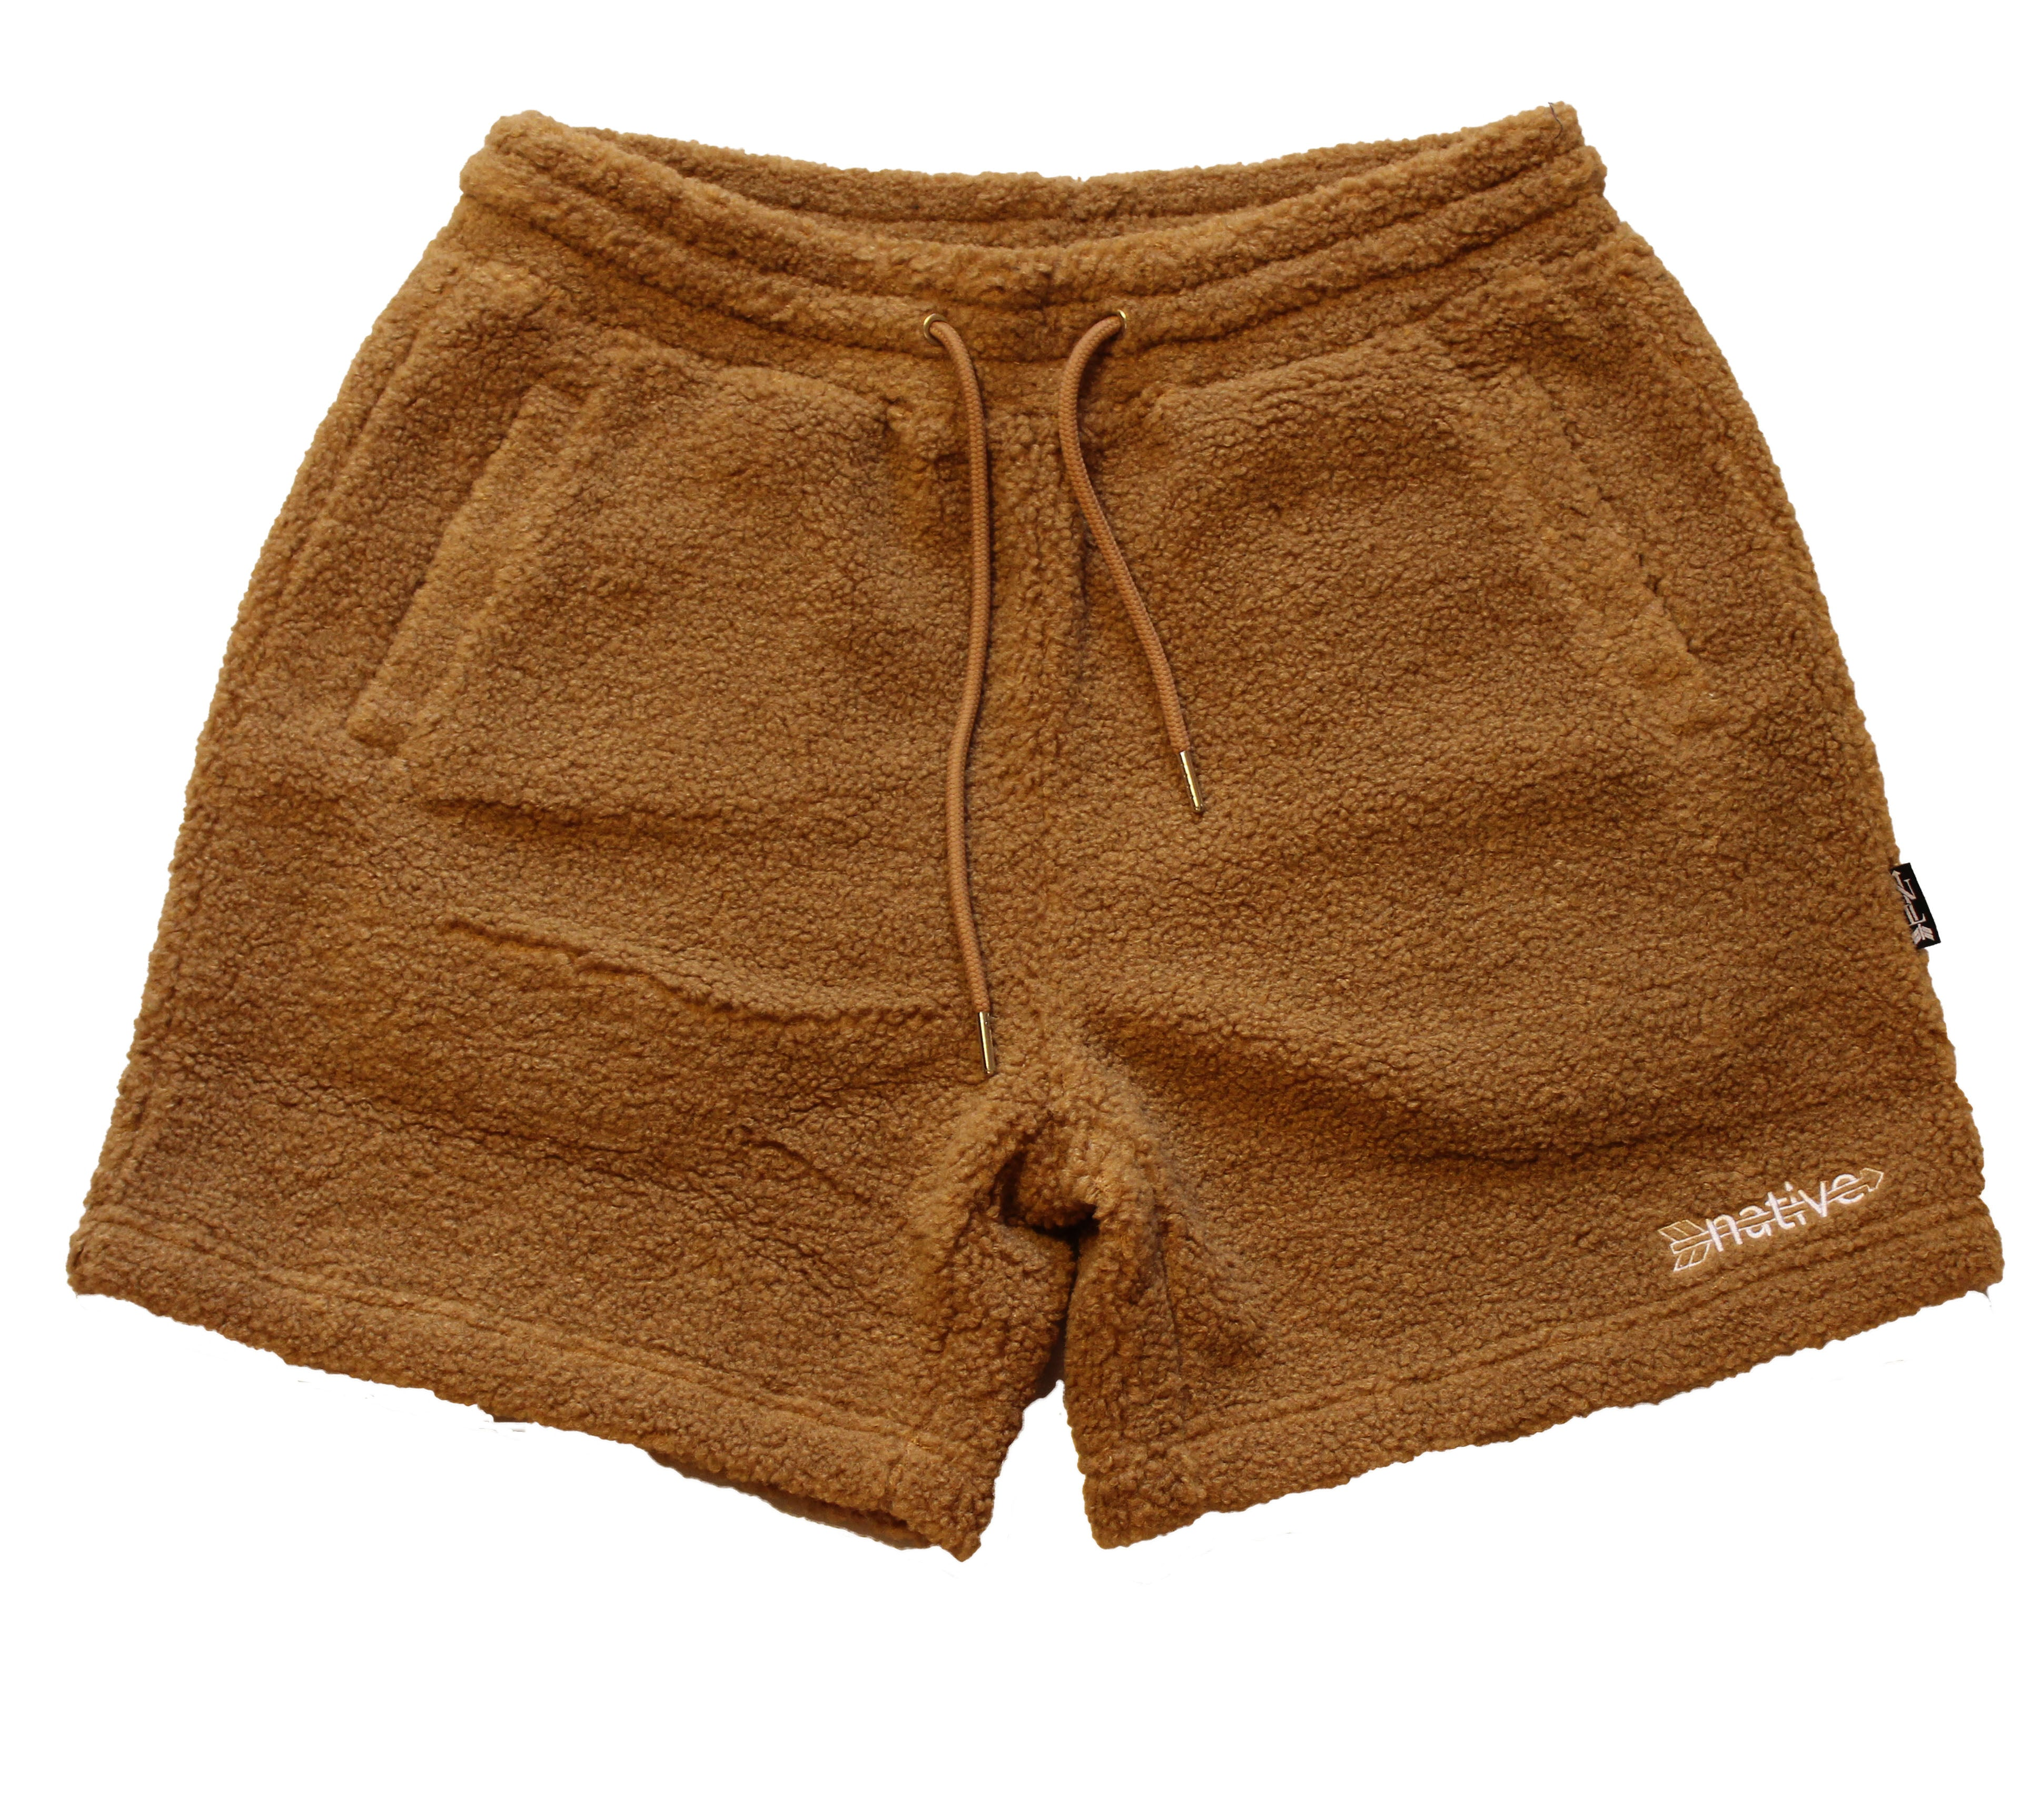 sherpa shorts in russet